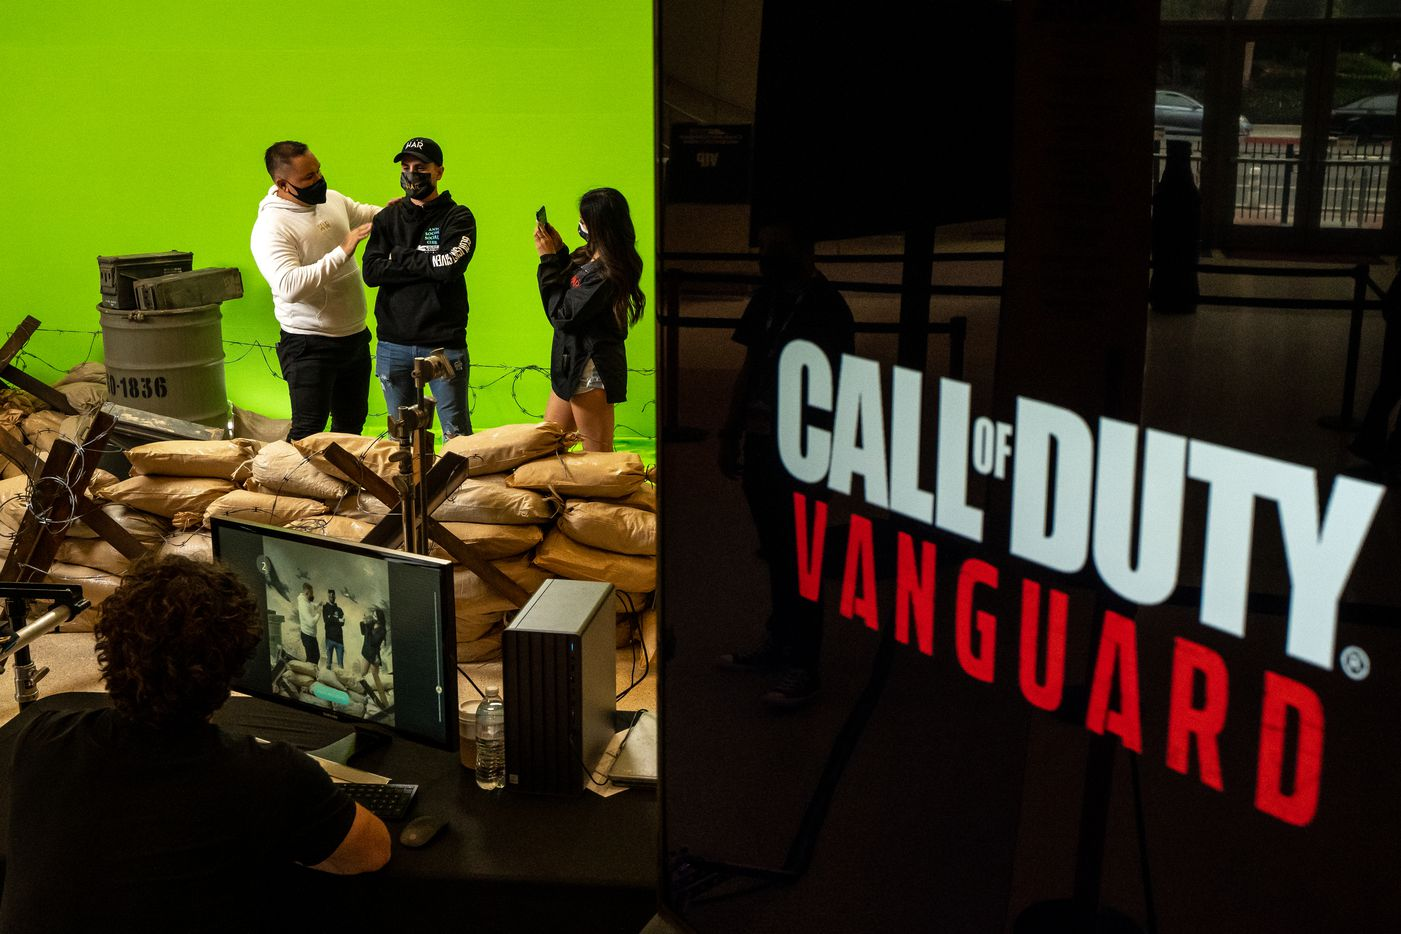 From left, Christian Bourdeax pretends to dust off Kevin Pichardo as Malee Mabandit takes a photo in a Call of Duty green screen booth to advertising the next game in the franchise, Call of Duty: Vanguard, on the final day of the Call of Duty league playoffs championship round at the Galen Center on Sunday, August 22, 2021 in Los Angeles, California. The Atlanta FaZe compete against Toronto Ultra in the championship round at 12pm PST. (Justin L. Stewart/Special Contributor)